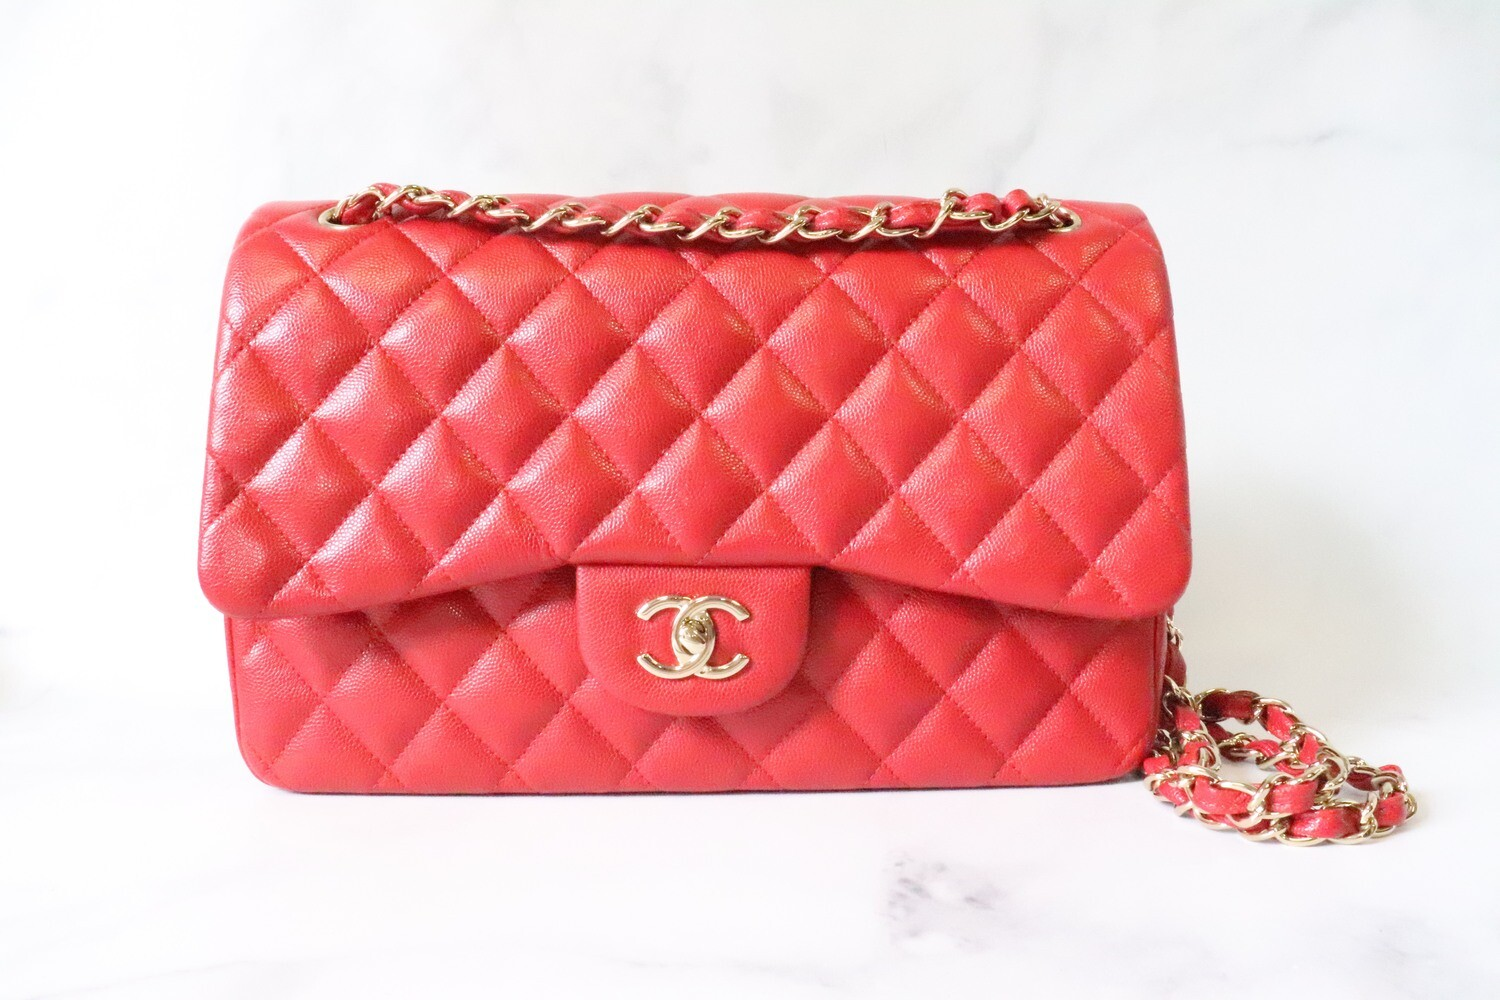 Chanel Classic Jumbo Double Flap Red Caviar Leather, Gold Hardware, Preowned in Box